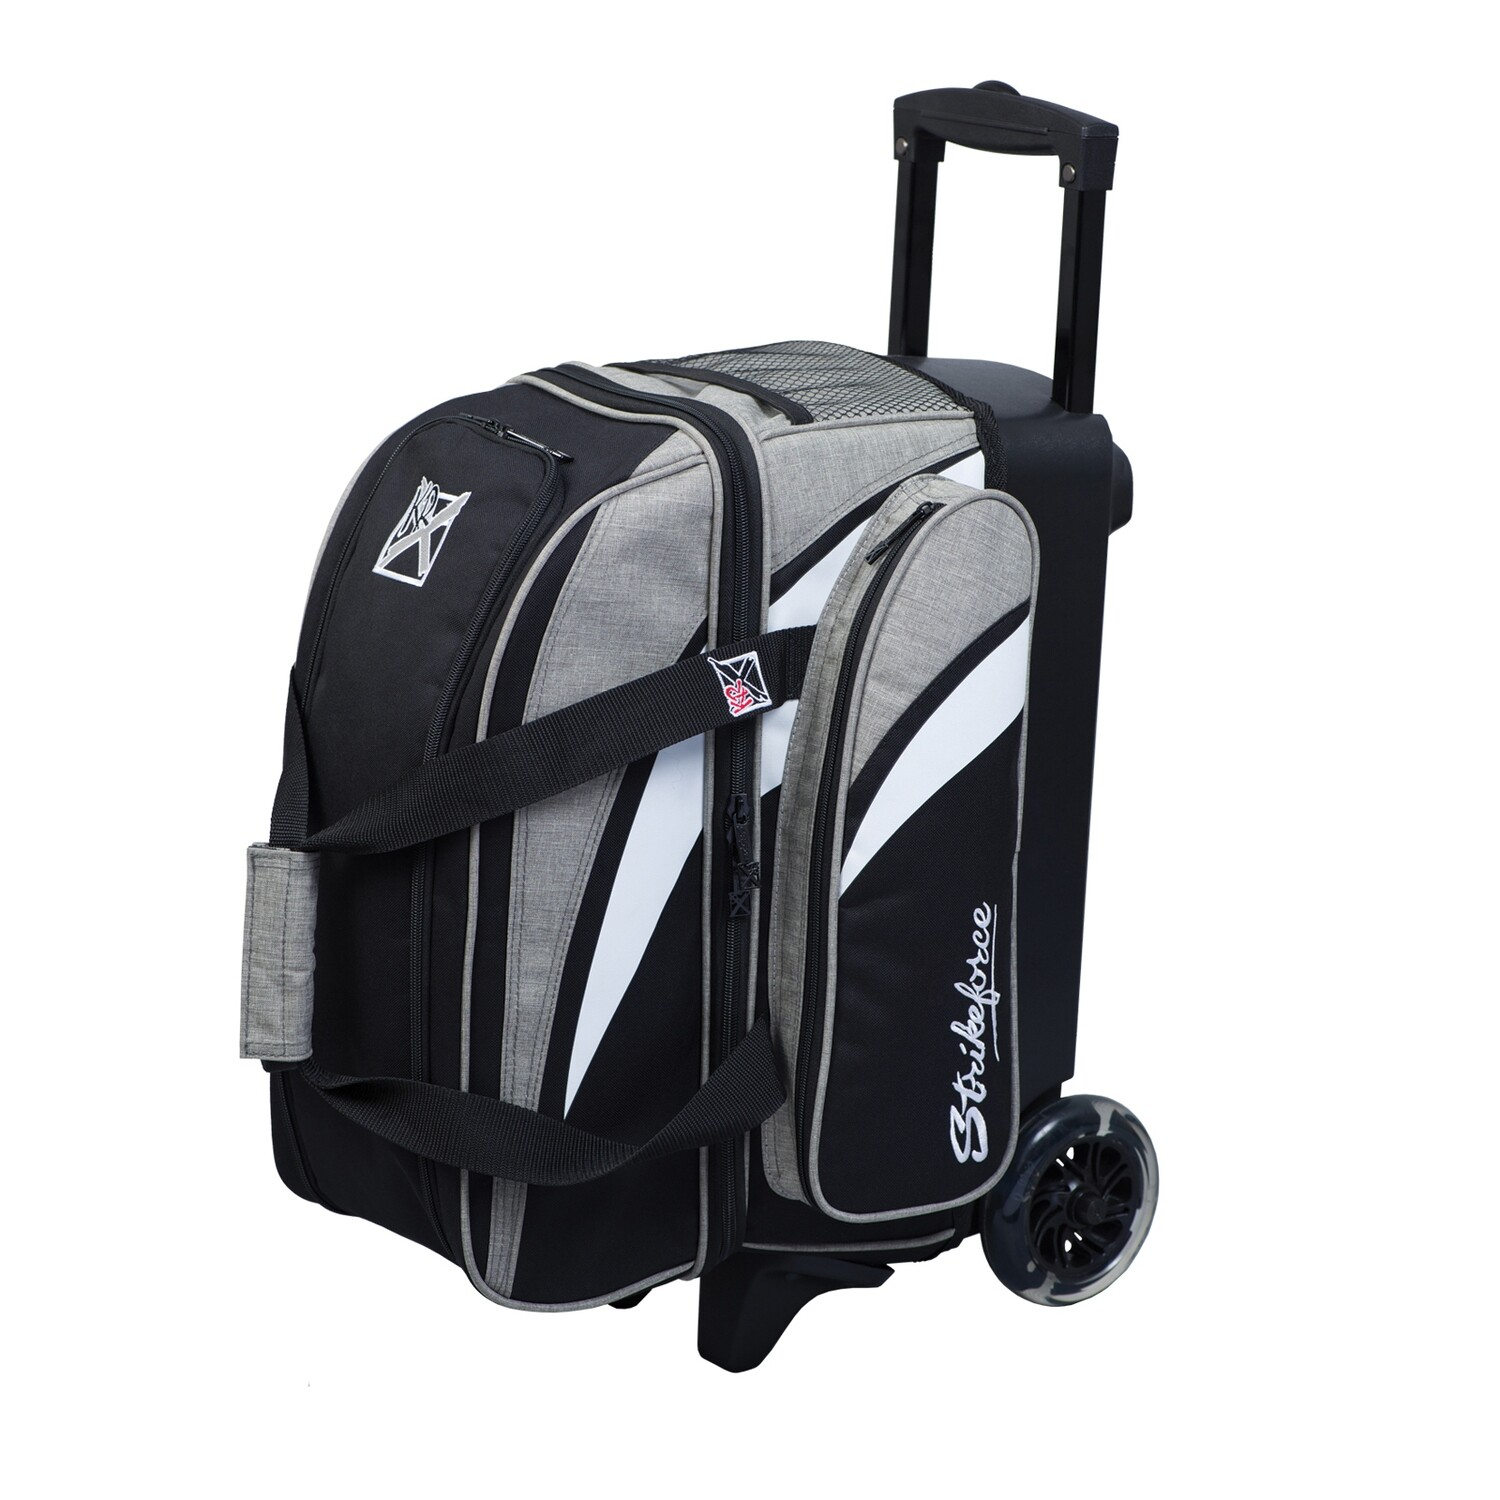 KR Strikeforce Cruiser Stone/Black 2 Ball Roller Bowling Bag